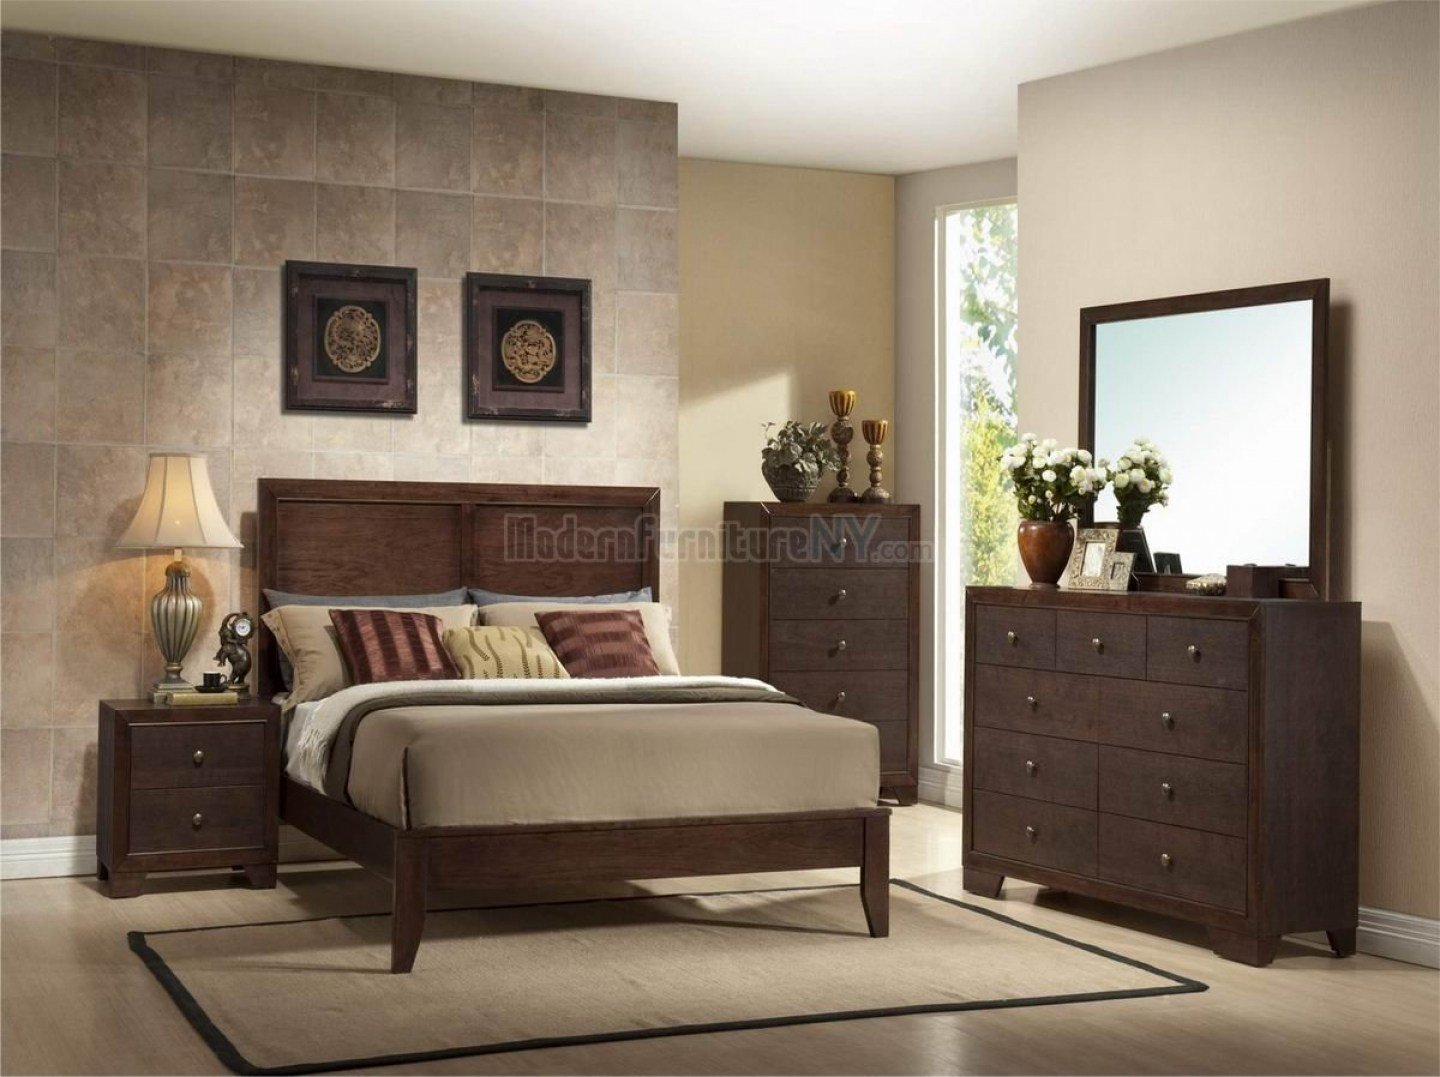 Best Modern Furniture Bedroom Sets Bedroom Sets On Clearance Sale King Bedroom Sets Clearance With Pictures